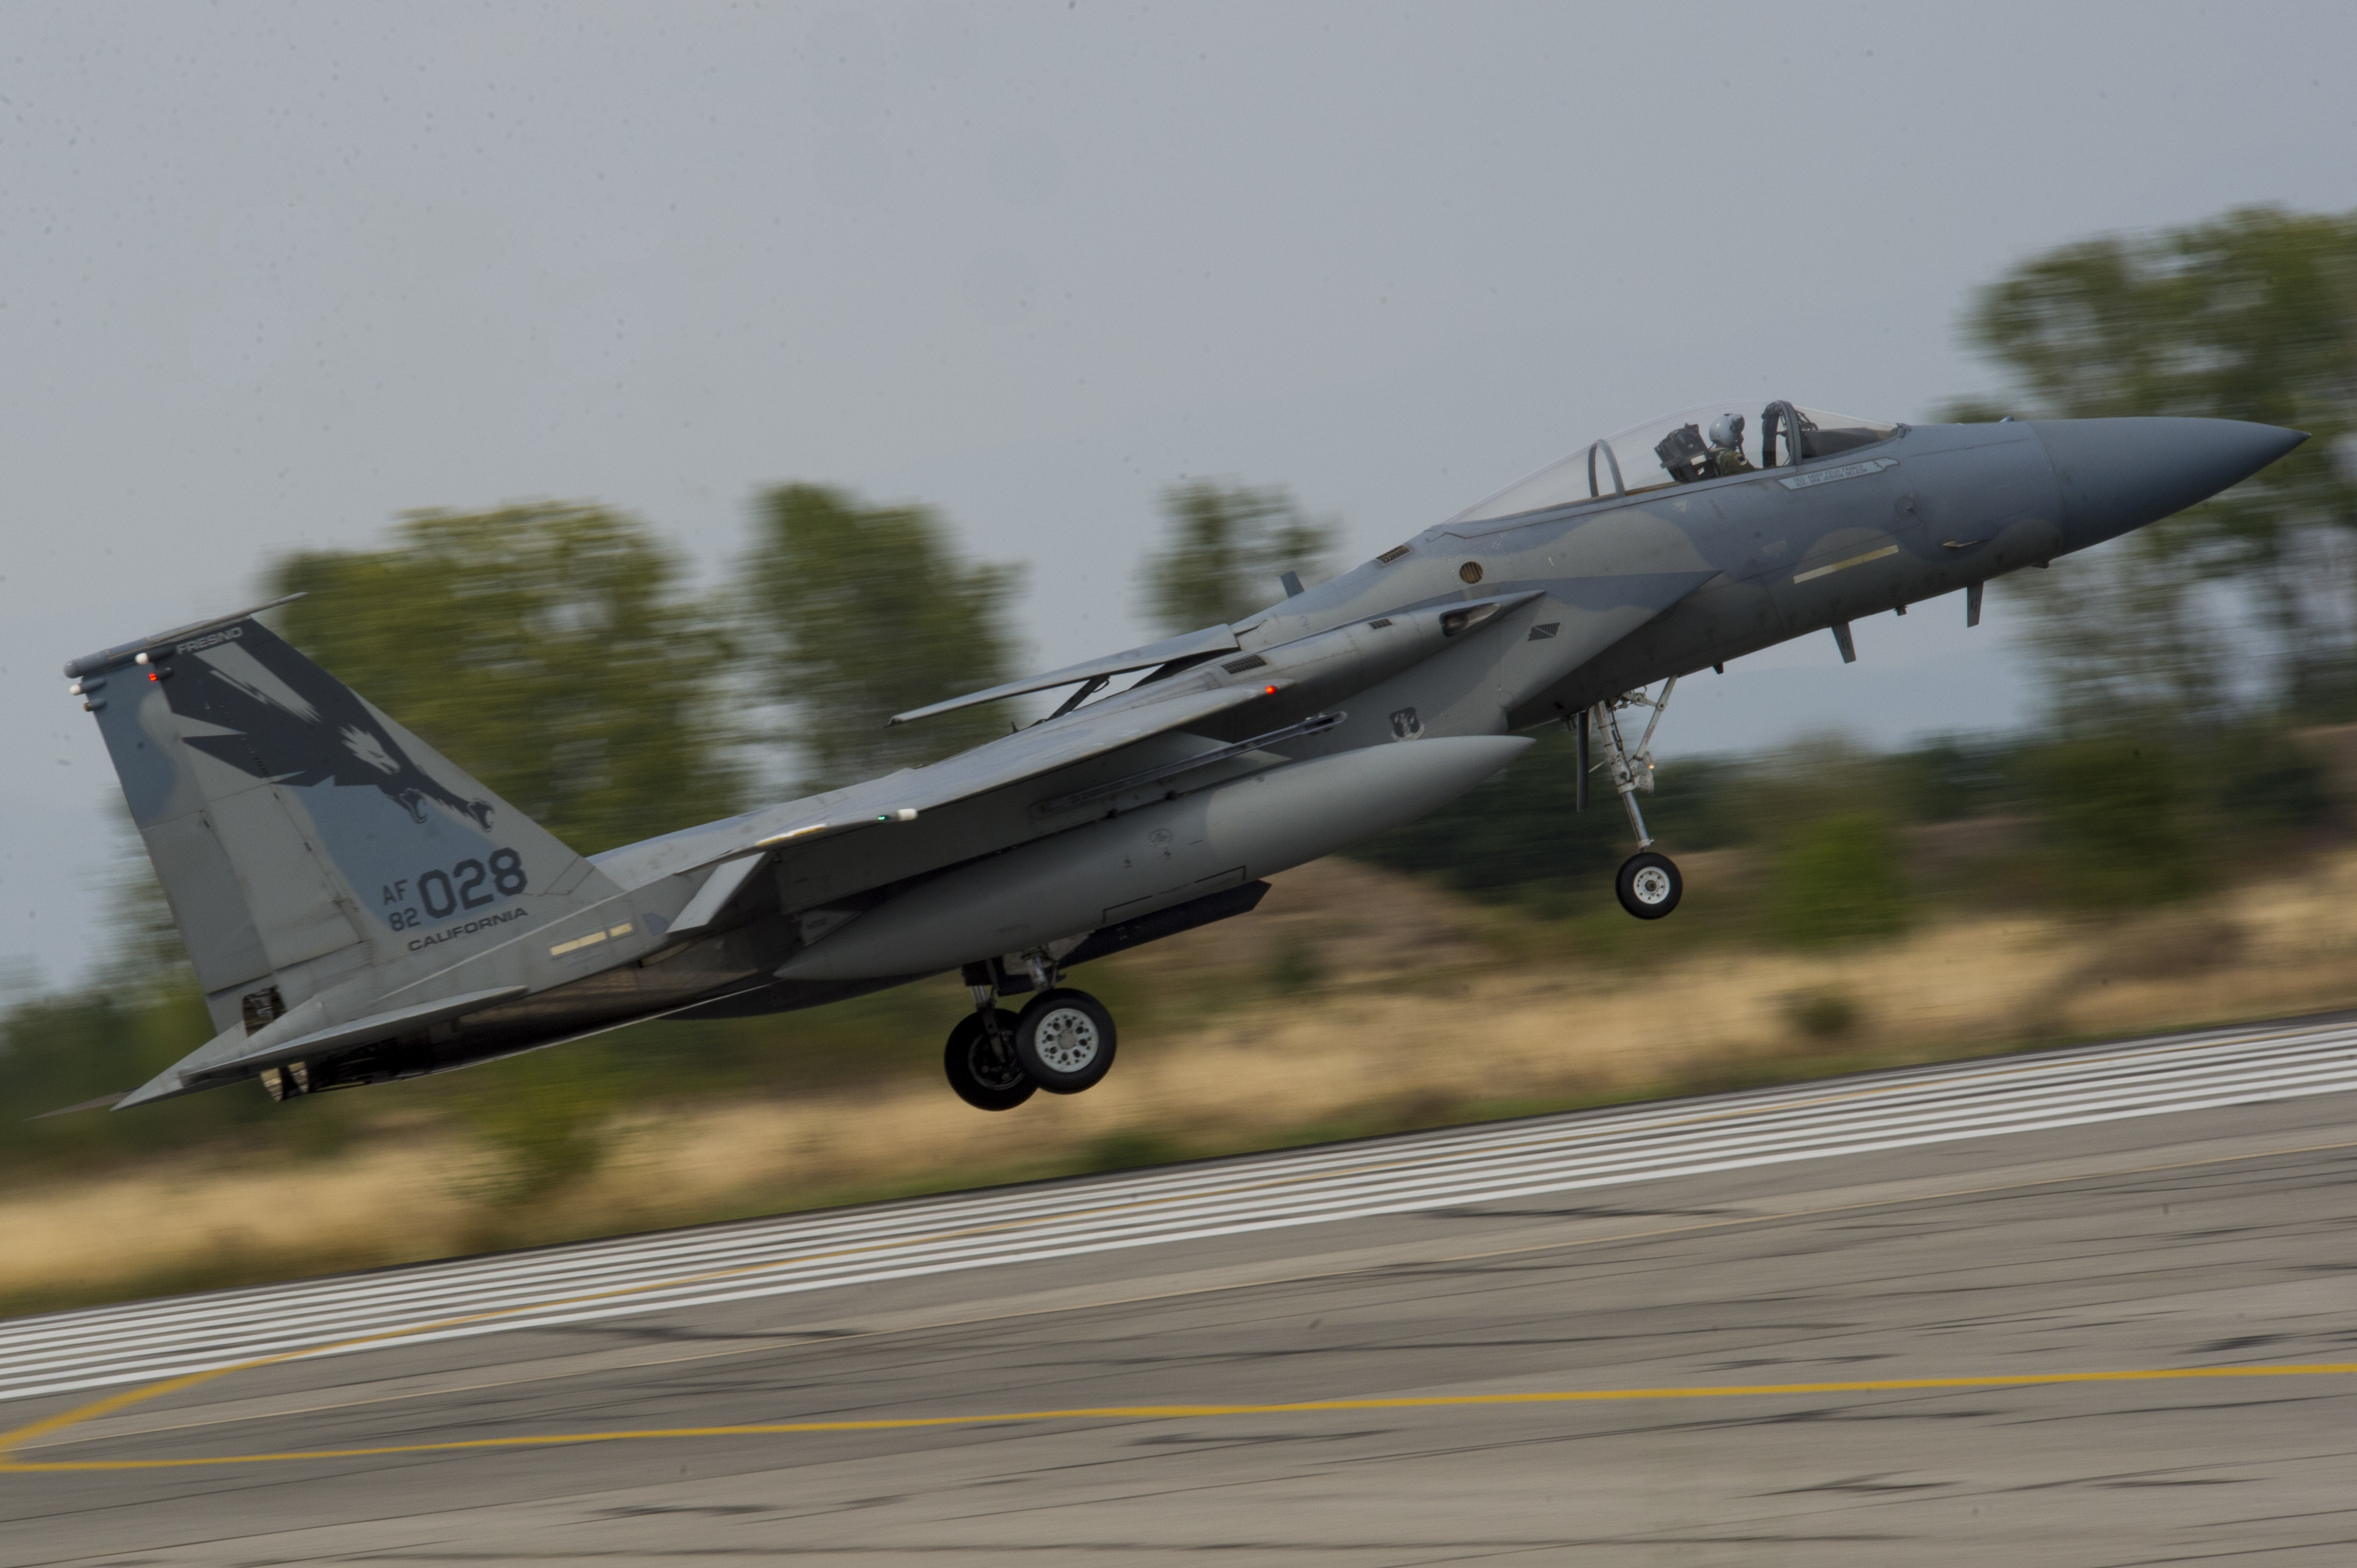 A California Air National Guard F-15C Eagle lands on the flightline at Graf Ignatievo, Bulgaria, Sept. 8, 2016. Four of the 194th Expeditionary Fighter Squadron's F-15Cs will conduct joint NATO air policing missions with the Bulgarian air force to police the host nation's sovereign airspace Sept. 9-16, 2016. The squadron forward deployed to Graf Ignatievo from Campia Turzii, Romania, where they serve on a theater security package deployment to Europe as a part of Operation Atlantic Resolve. (U.S. Air Force photo by Staff Sgt. Joe W. McFadden)